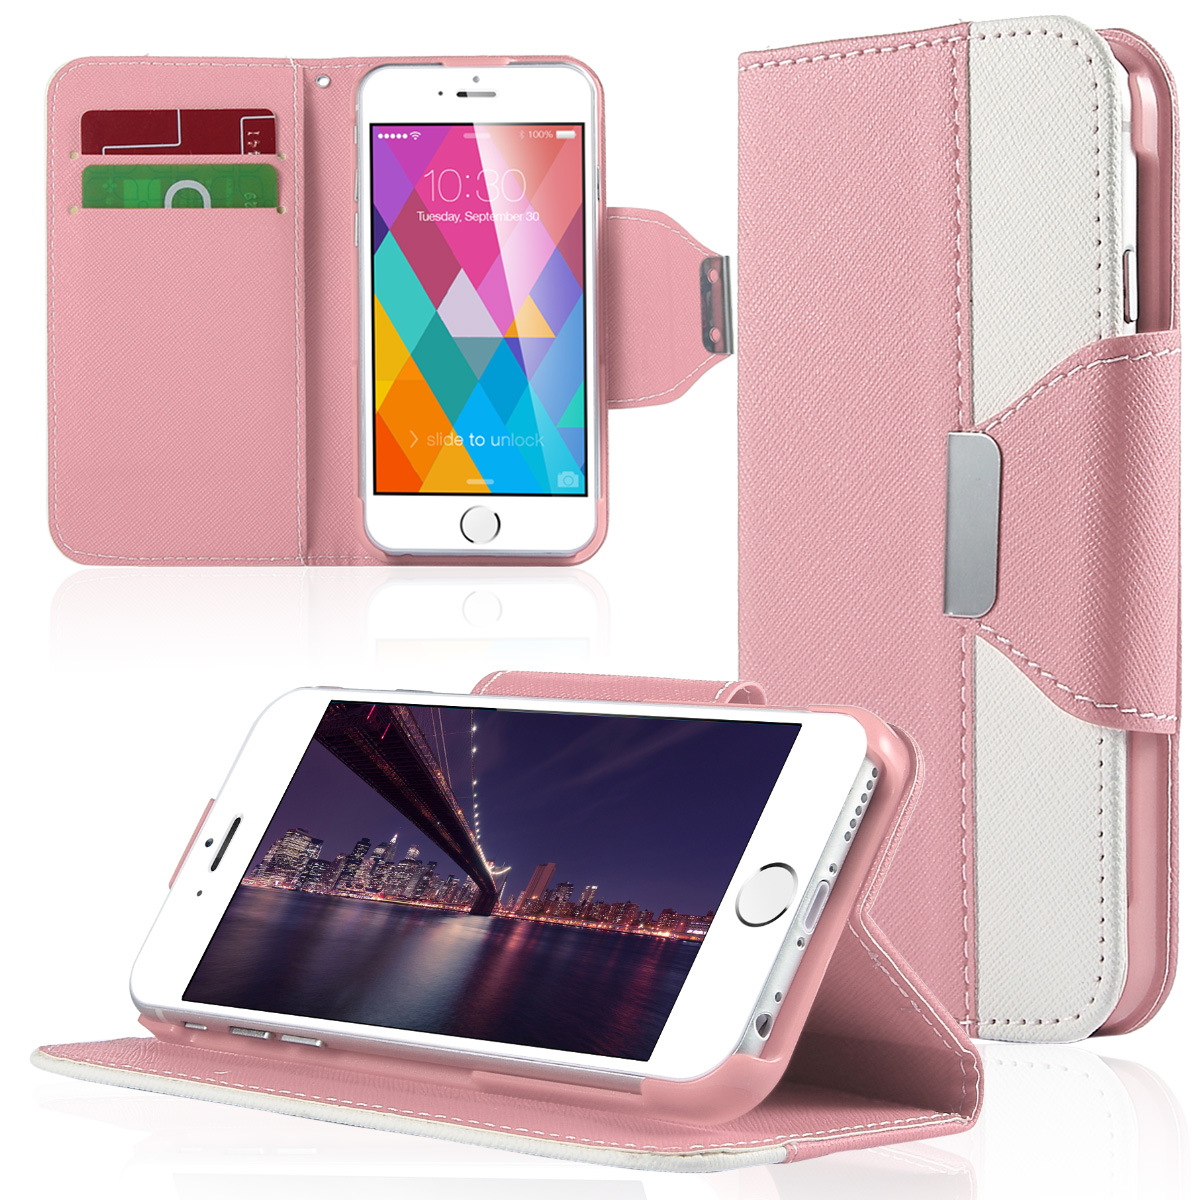 ULAK Dual Color Wallet Case with Card Slots for Apple iPhone 6S 6 4.7 Inch(Pink/White)